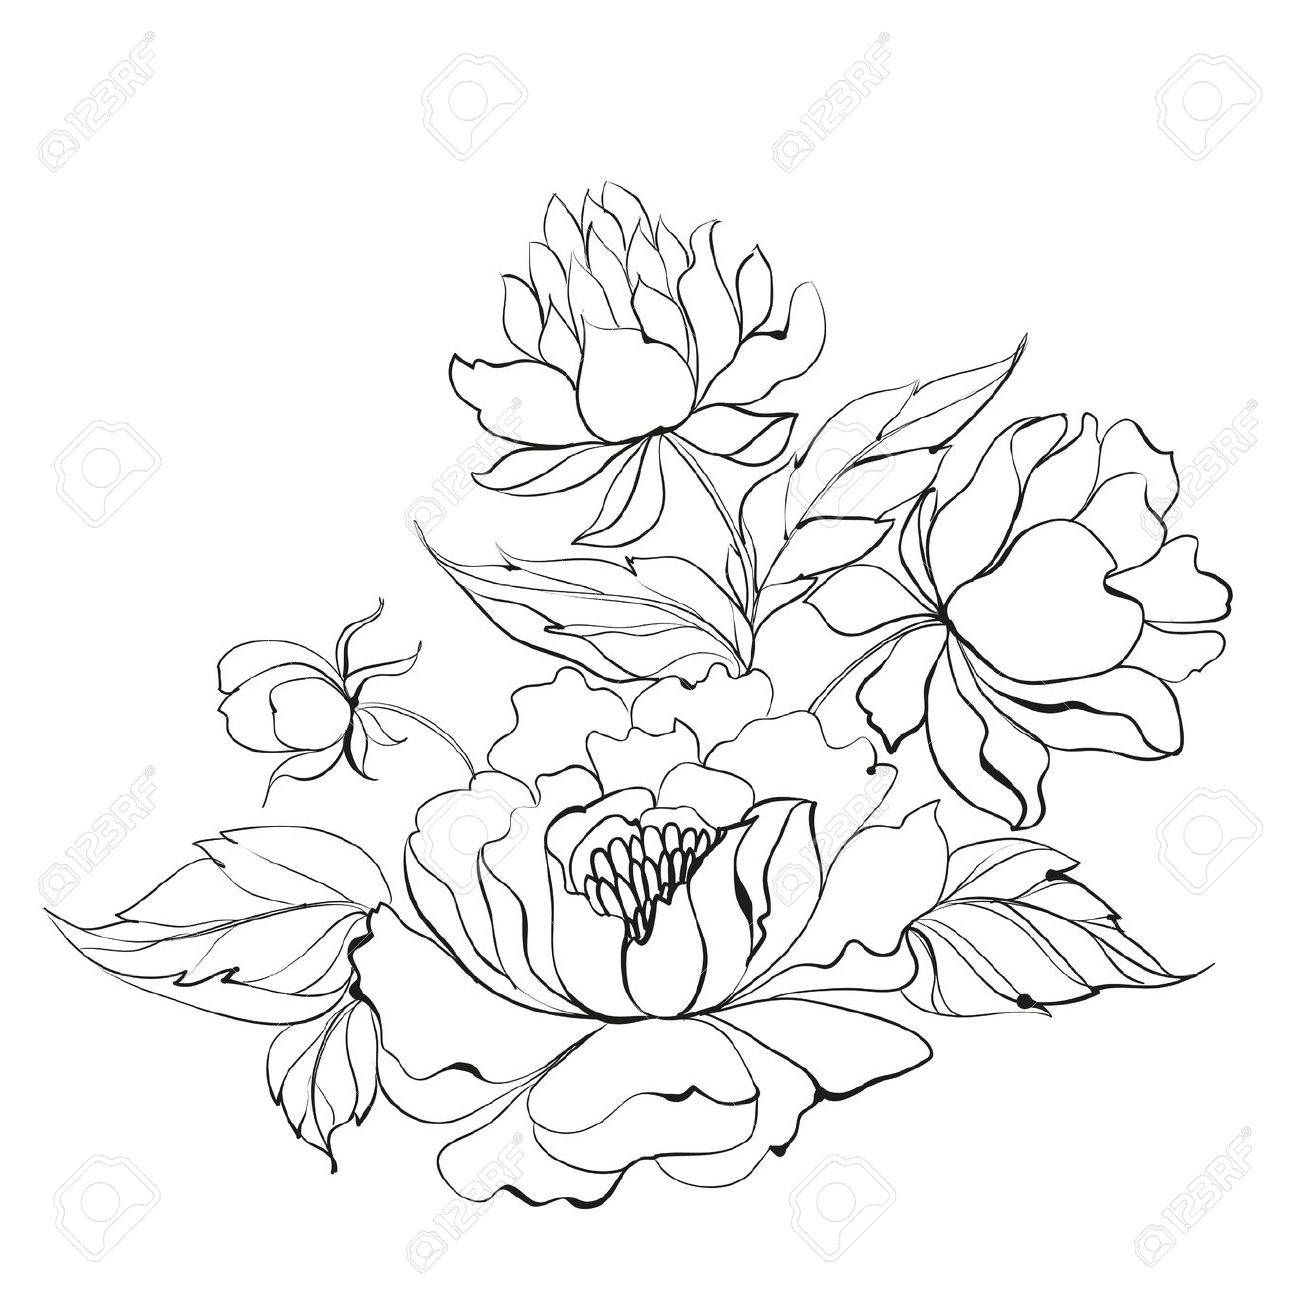 Peony clipart black and white.